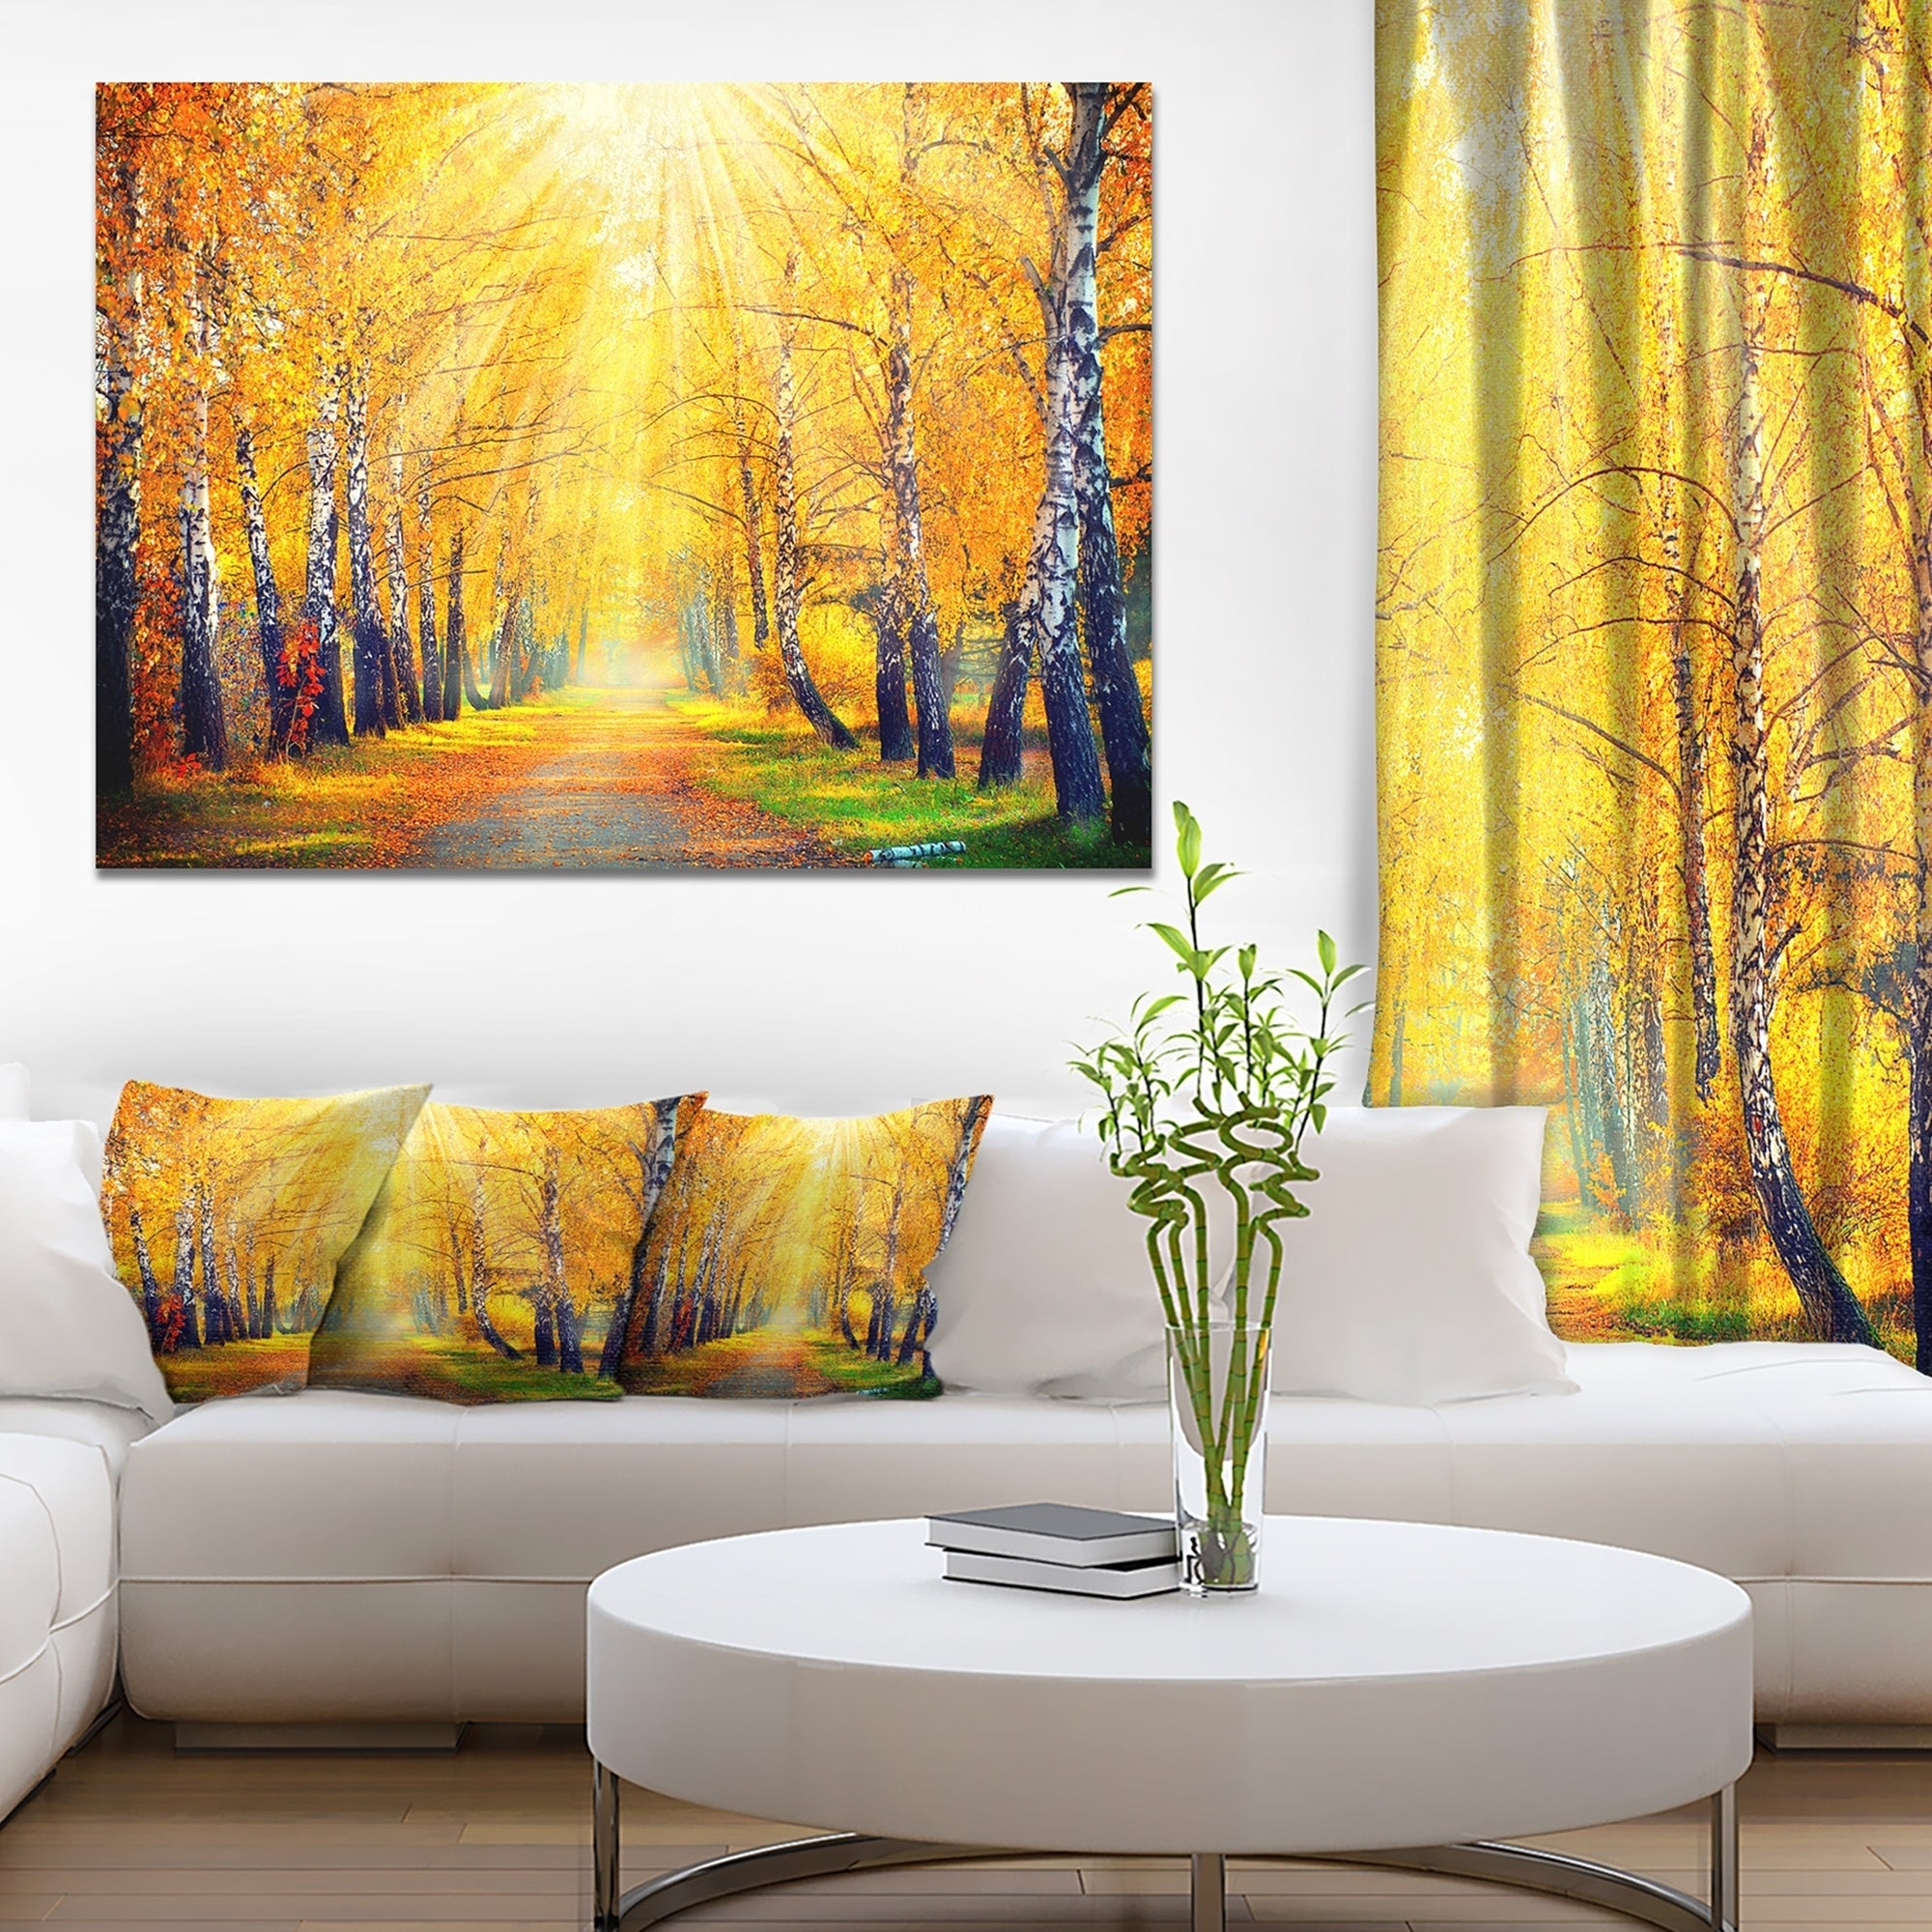 Yellow Autumn Trees In Sunray Landscape Art Canvas Print Overstock 13178742